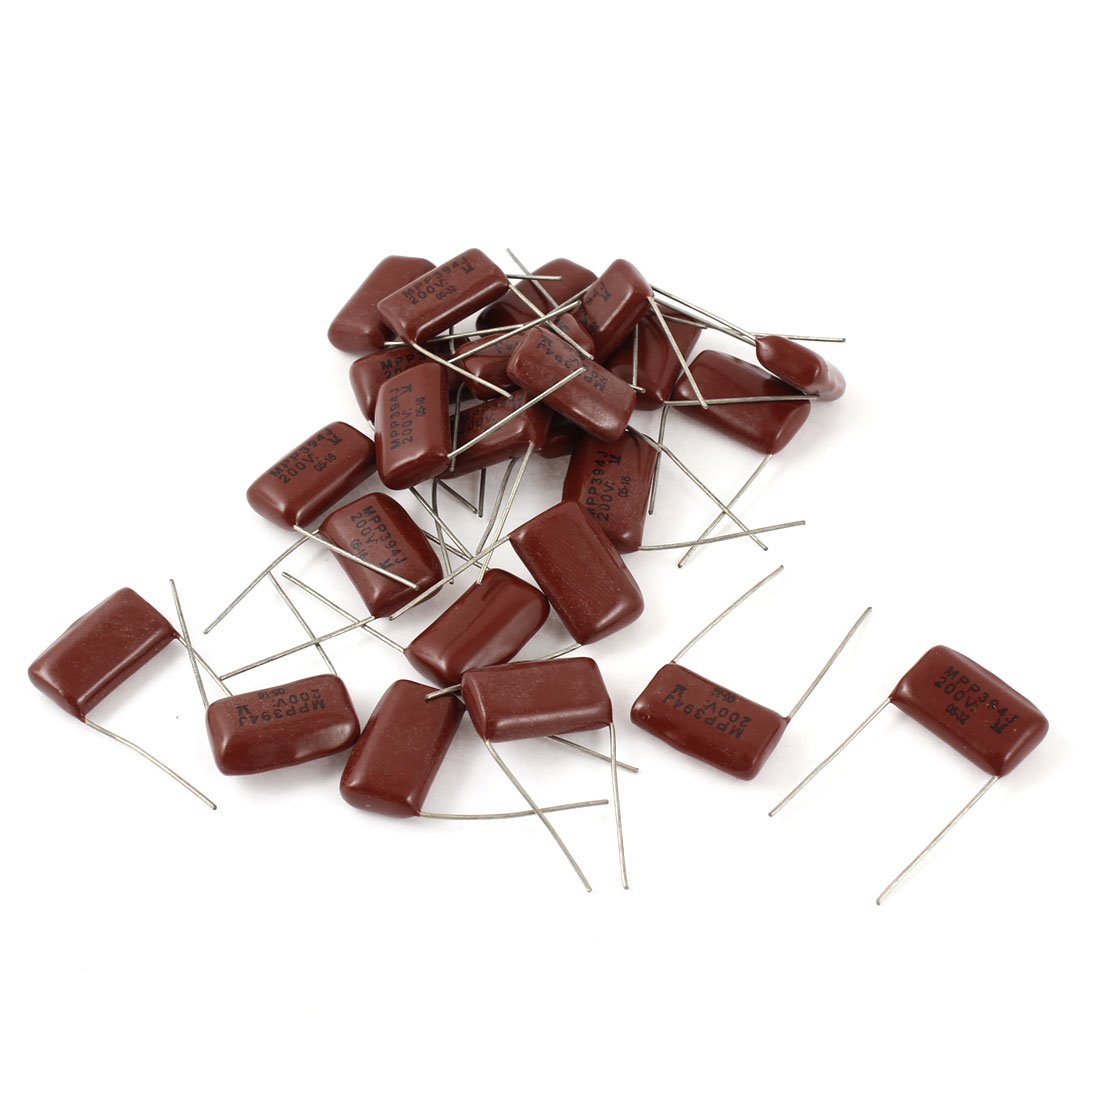 30PCS Radical Leads Metallized Polypropylene Film Capacitors 0.39uf 200V